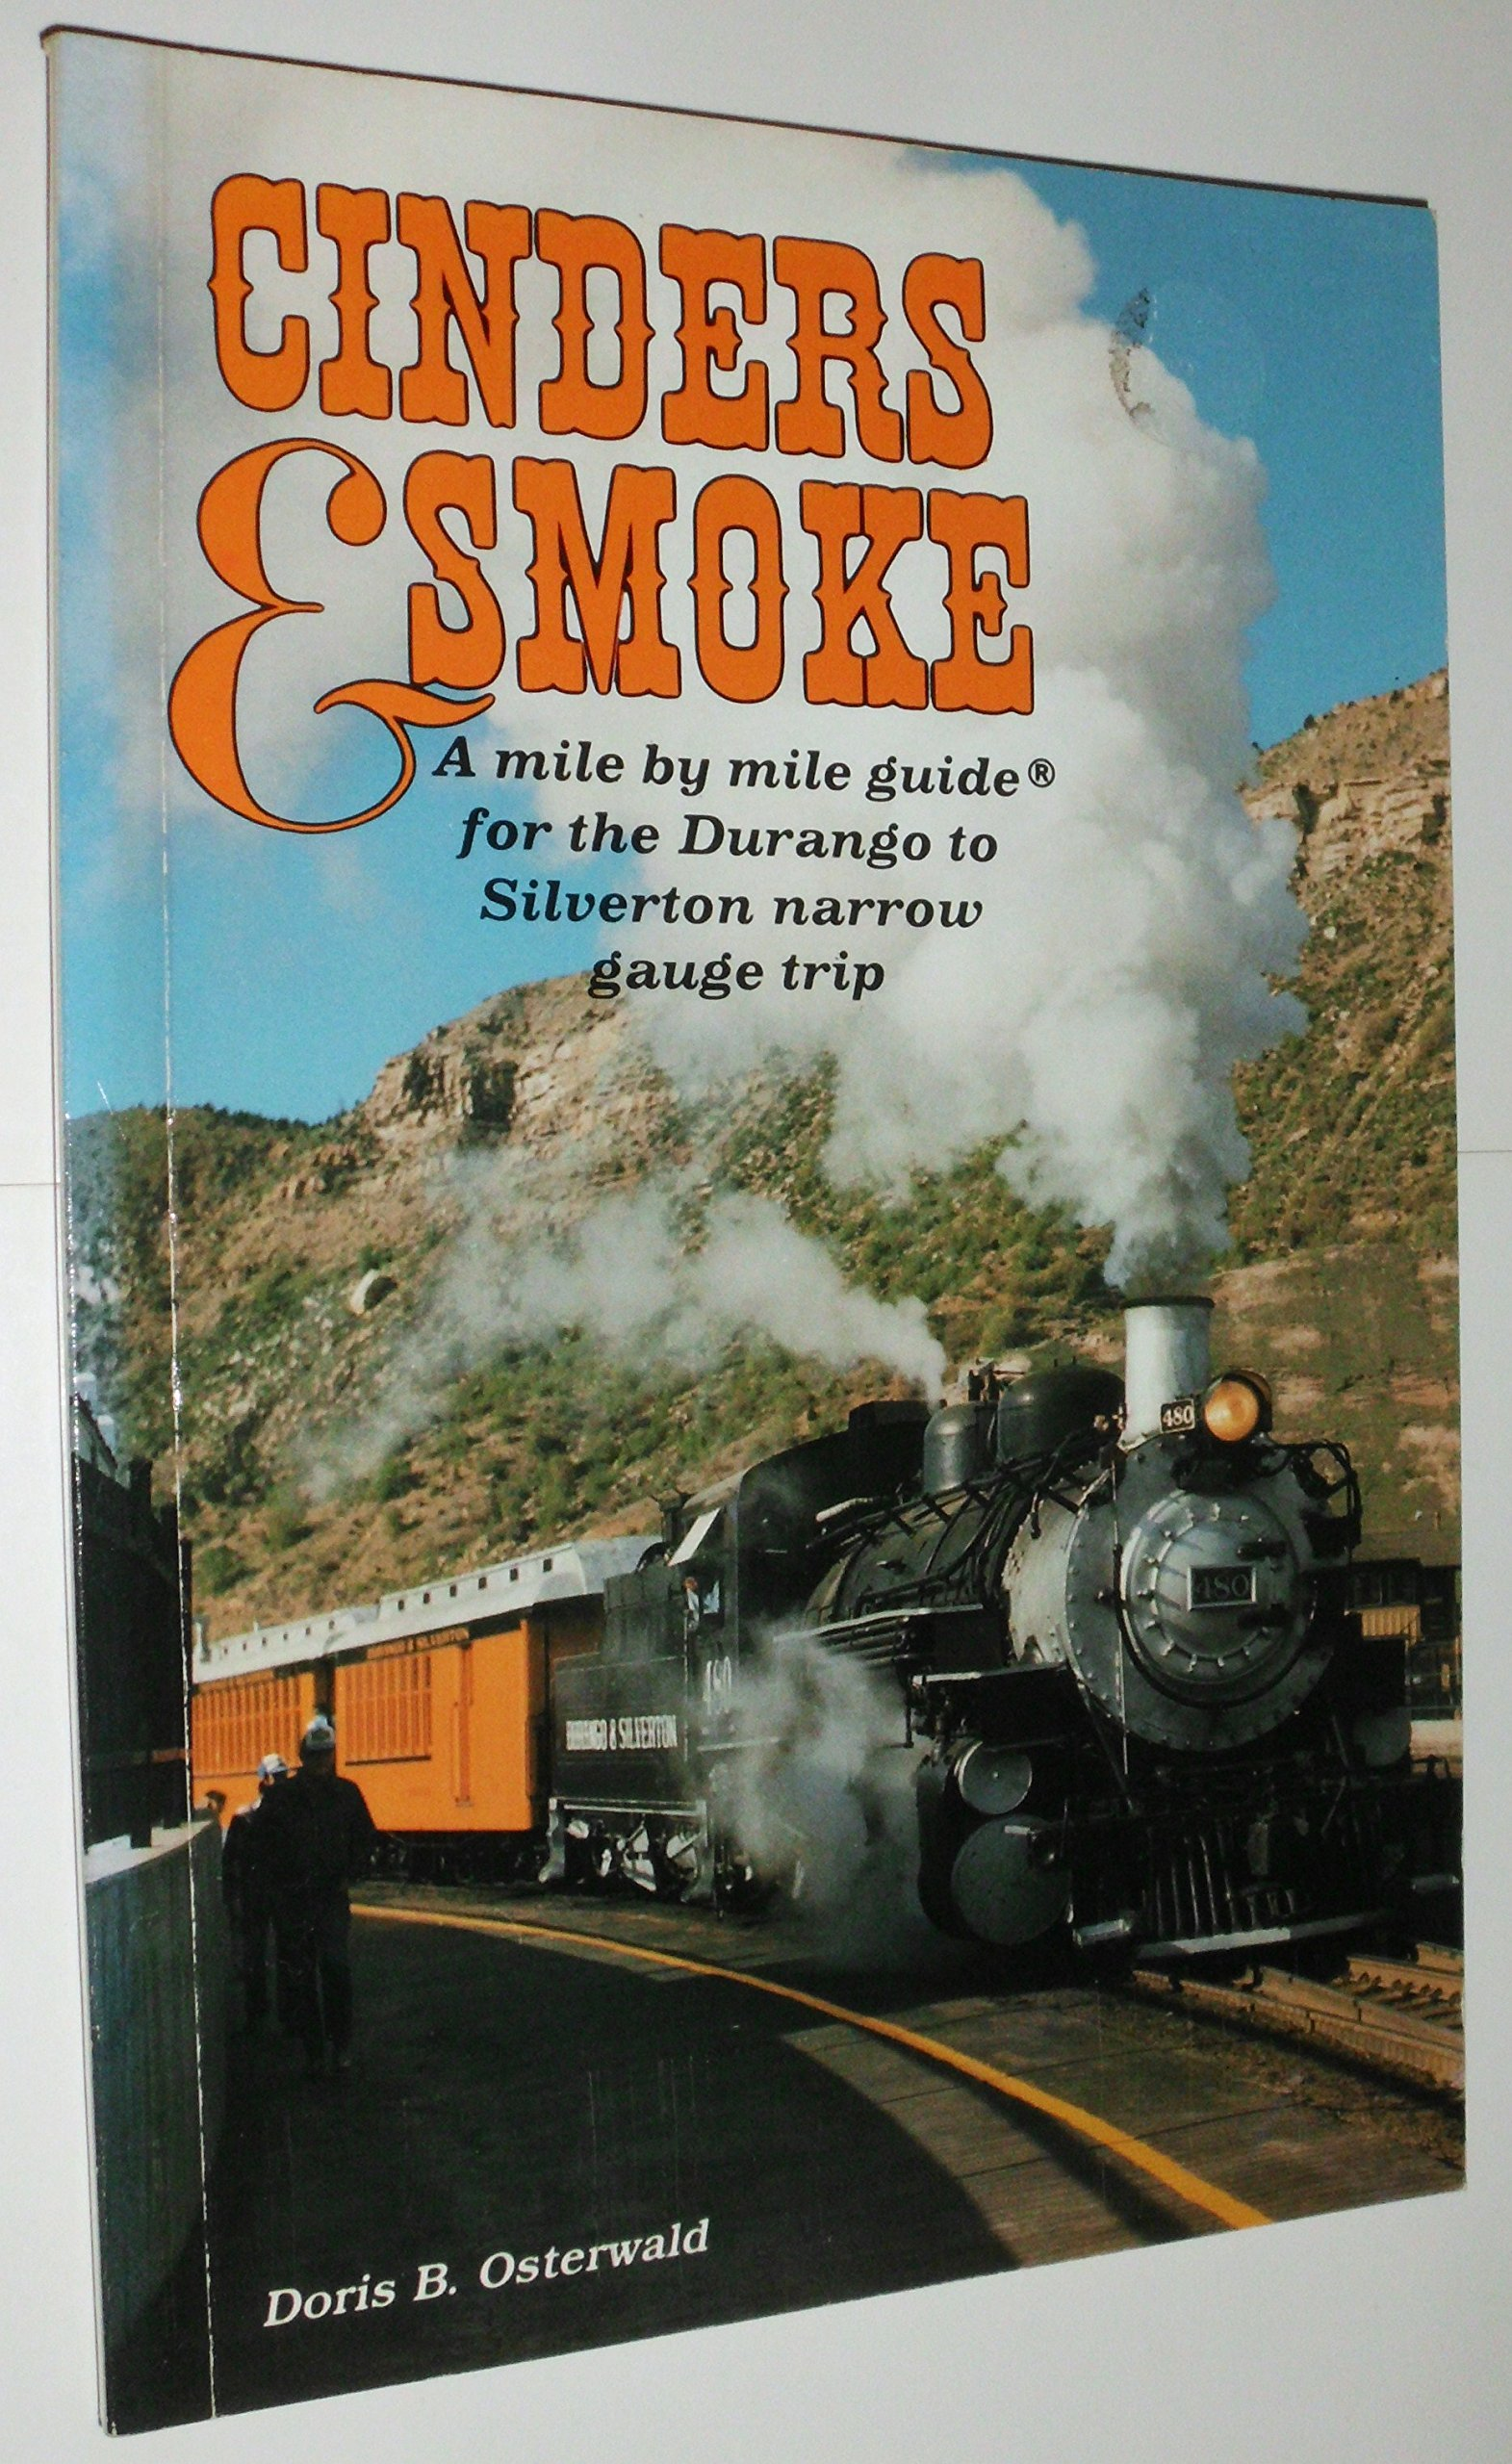 Cinders and Smoke: A Mile Mile Guide for the Durango to Silverton Narrow Gauge Trip by Doris B. Osterwald